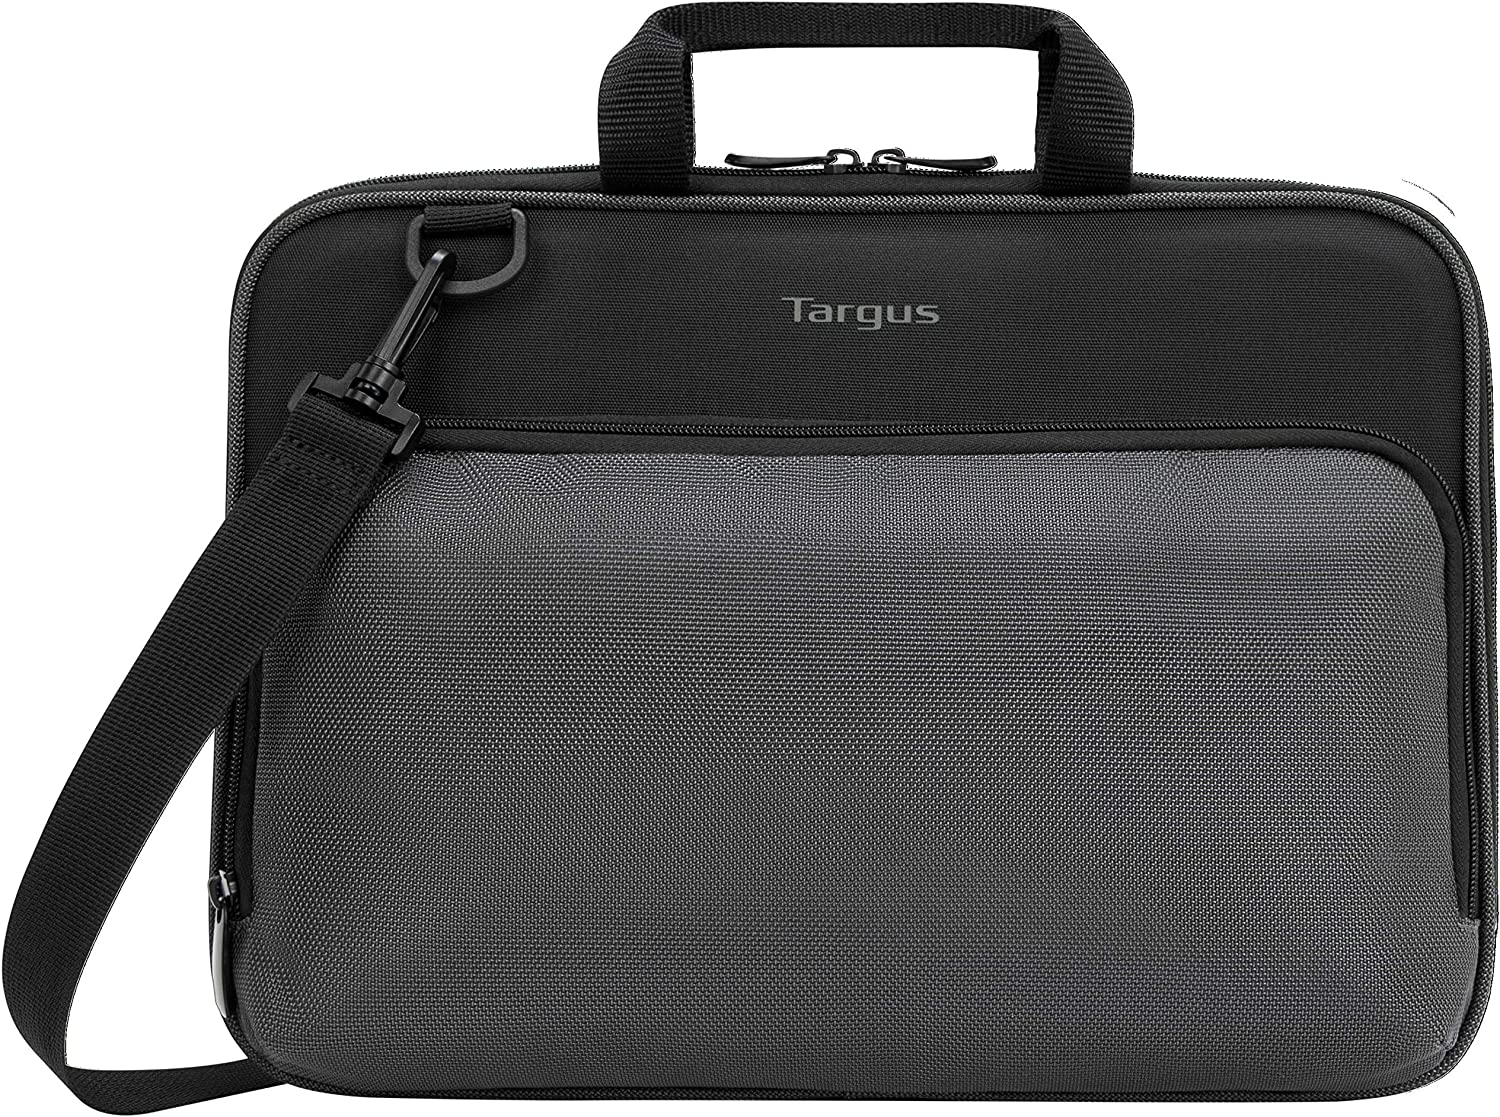 Targus Work-in Essentials Case with Slim Profile, Soft Touch Interior, Large Front Pocket Pouch, Protective Sleeve fits 13-14-Inch Laptop Chromebook, Black (TED007GL)